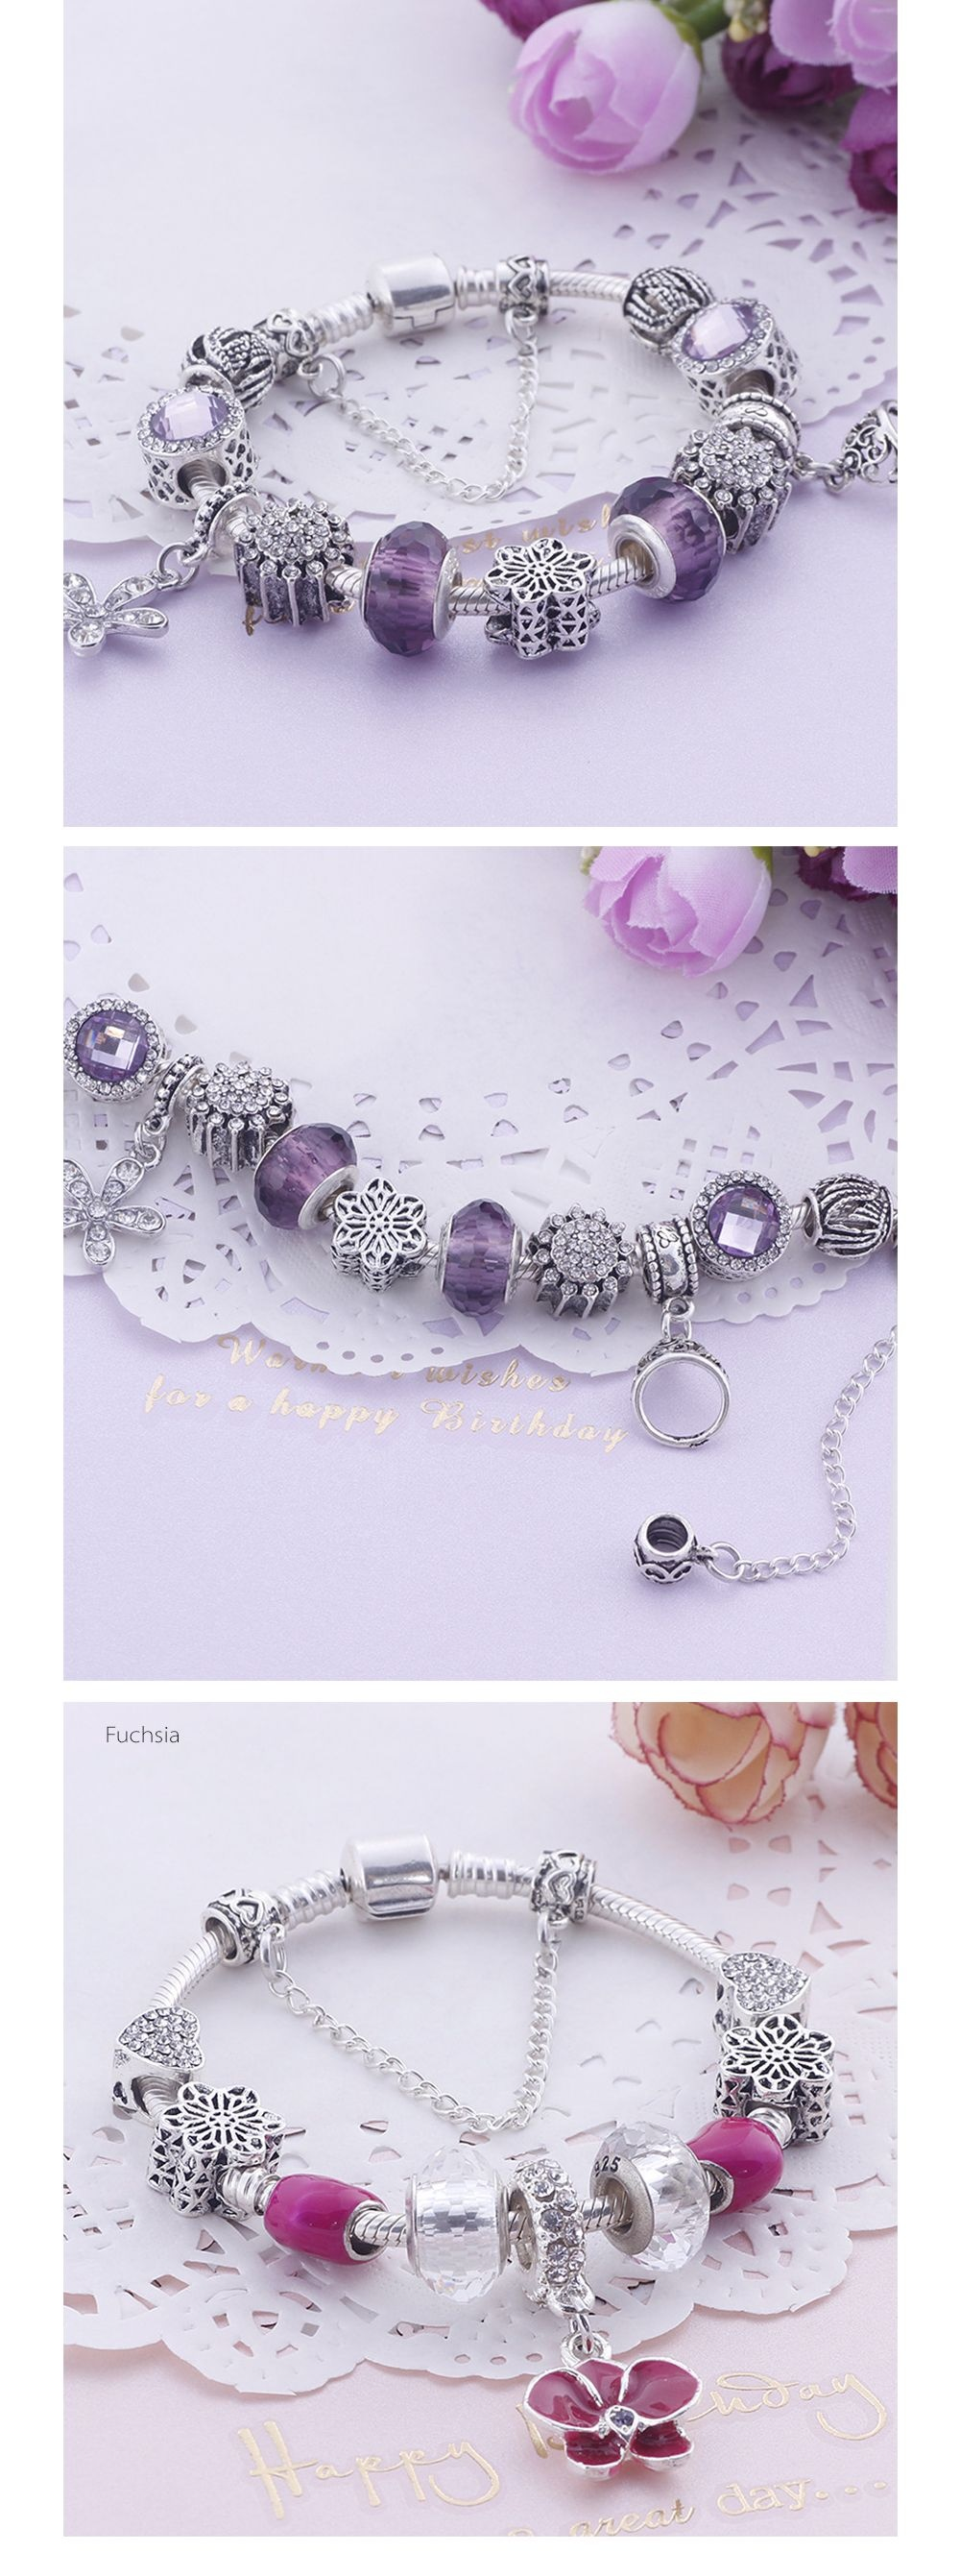 Princess Glass Beads Bracelet Creative Bracelet